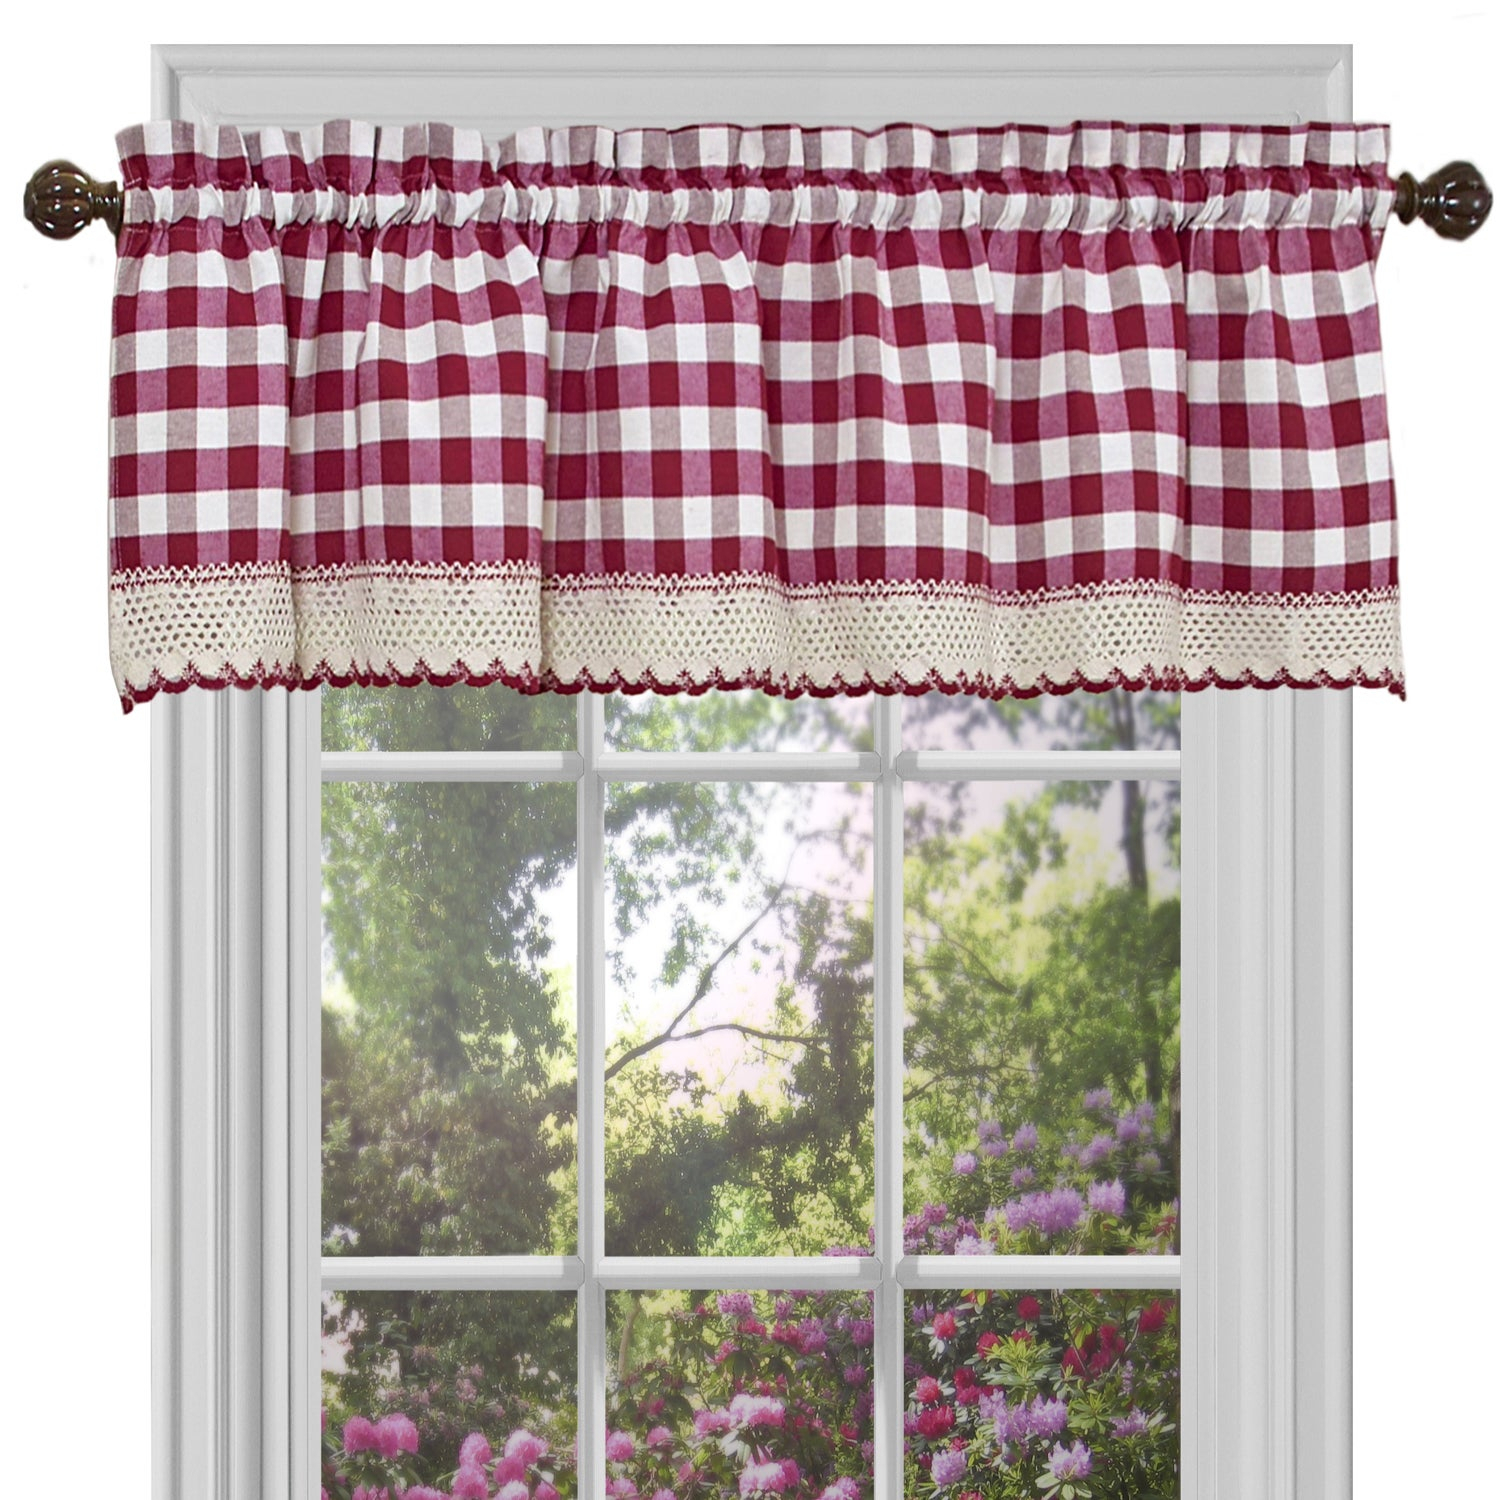 Classic Buffalo Check Kitchen Burgundy/white Curtain Set Or Separates Inside Kitchen Burgundy/white Curtain Sets (View 4 of 20)